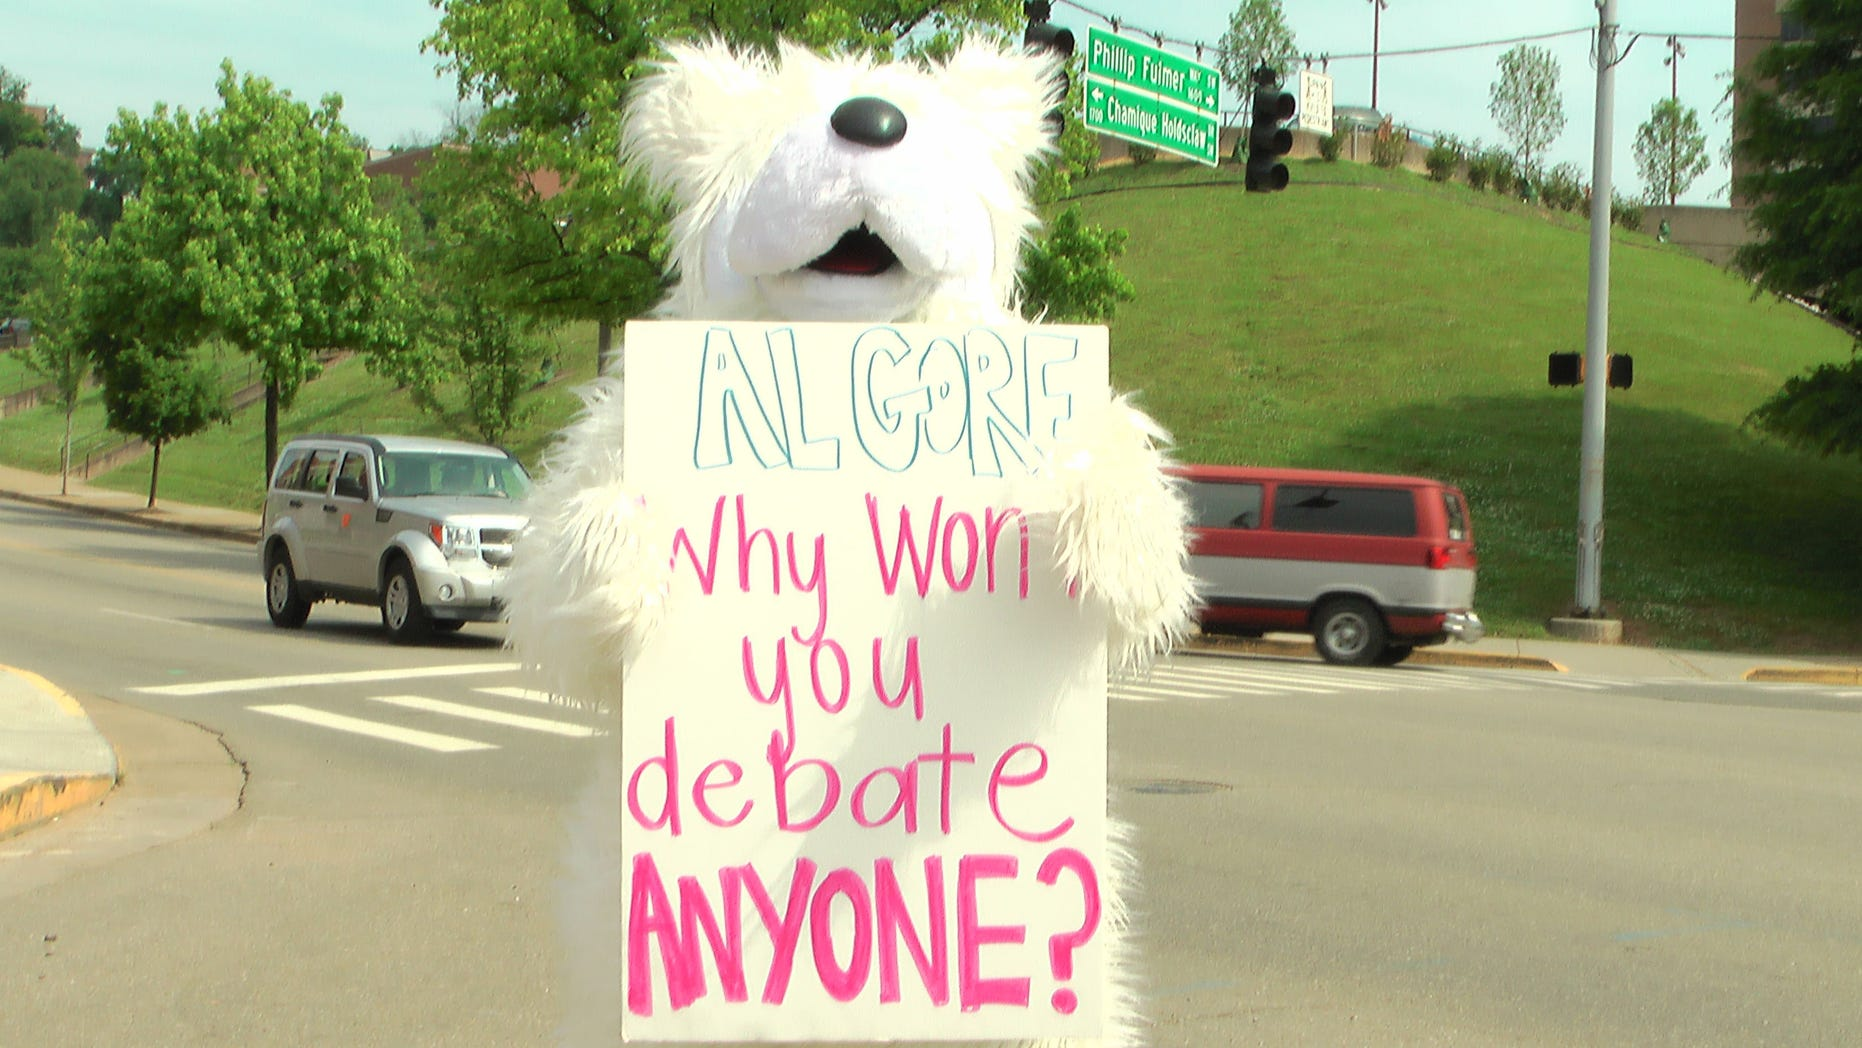 Friday: Global warming skeptic and filmmaker Phelim McAleer, dressed as a polar bear, protested Al Gore's honorary degree at the University of Tennessee commencement address (Greener Horizon Films, Ltd.)